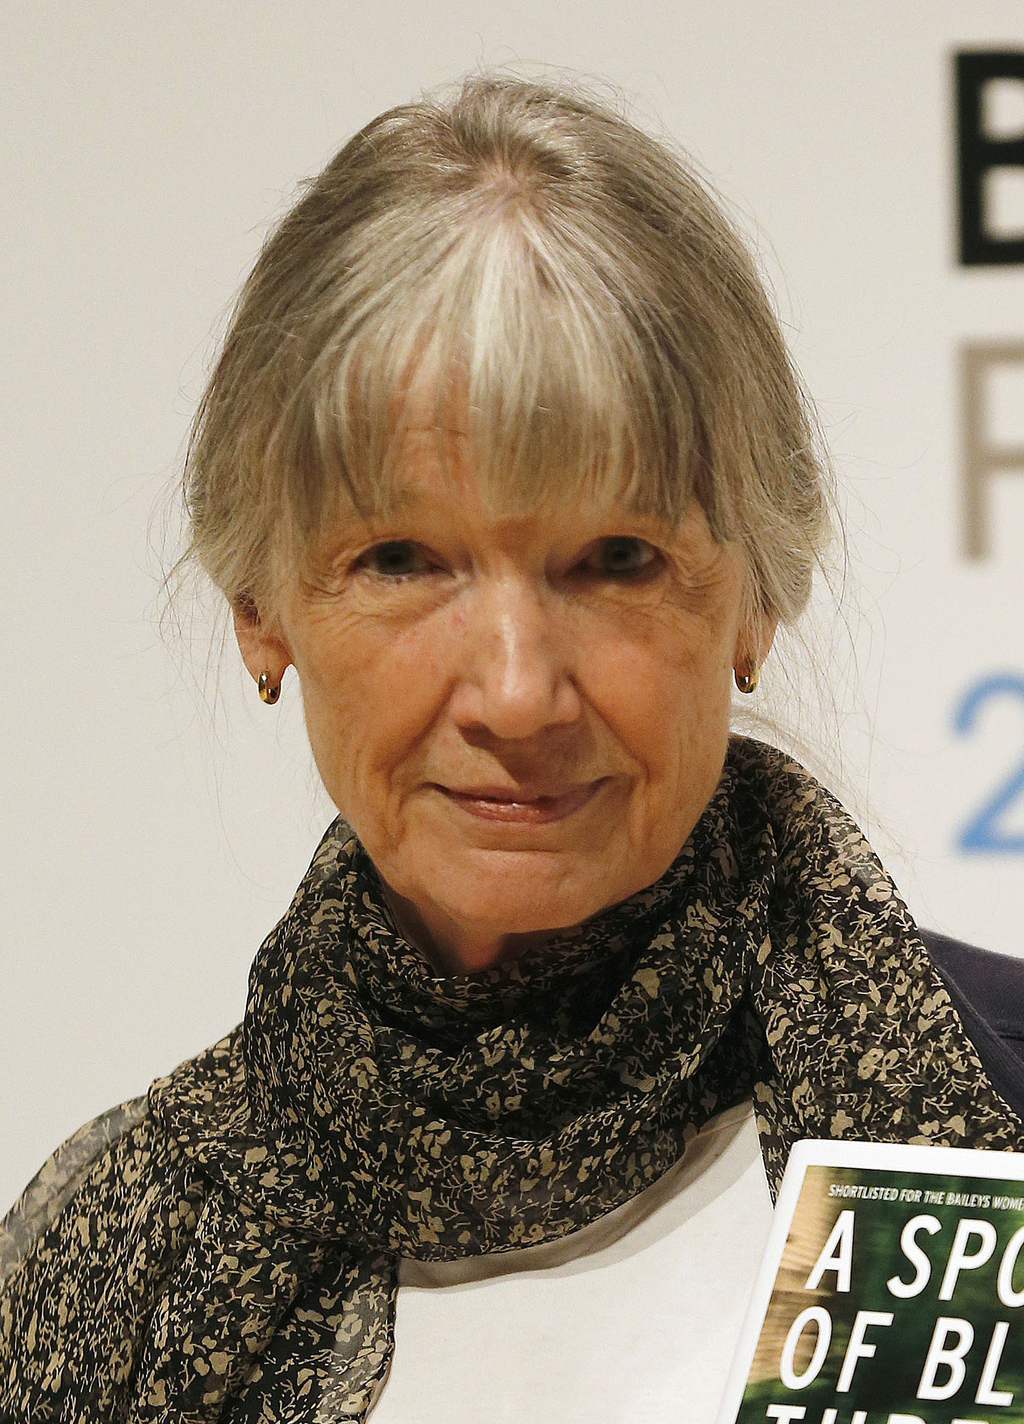 FILE - In this Oct. 12, 2015 file photo, author Anne Tyler appears in London. Paperback editions of Tyler's novels are being issued over the next seve...